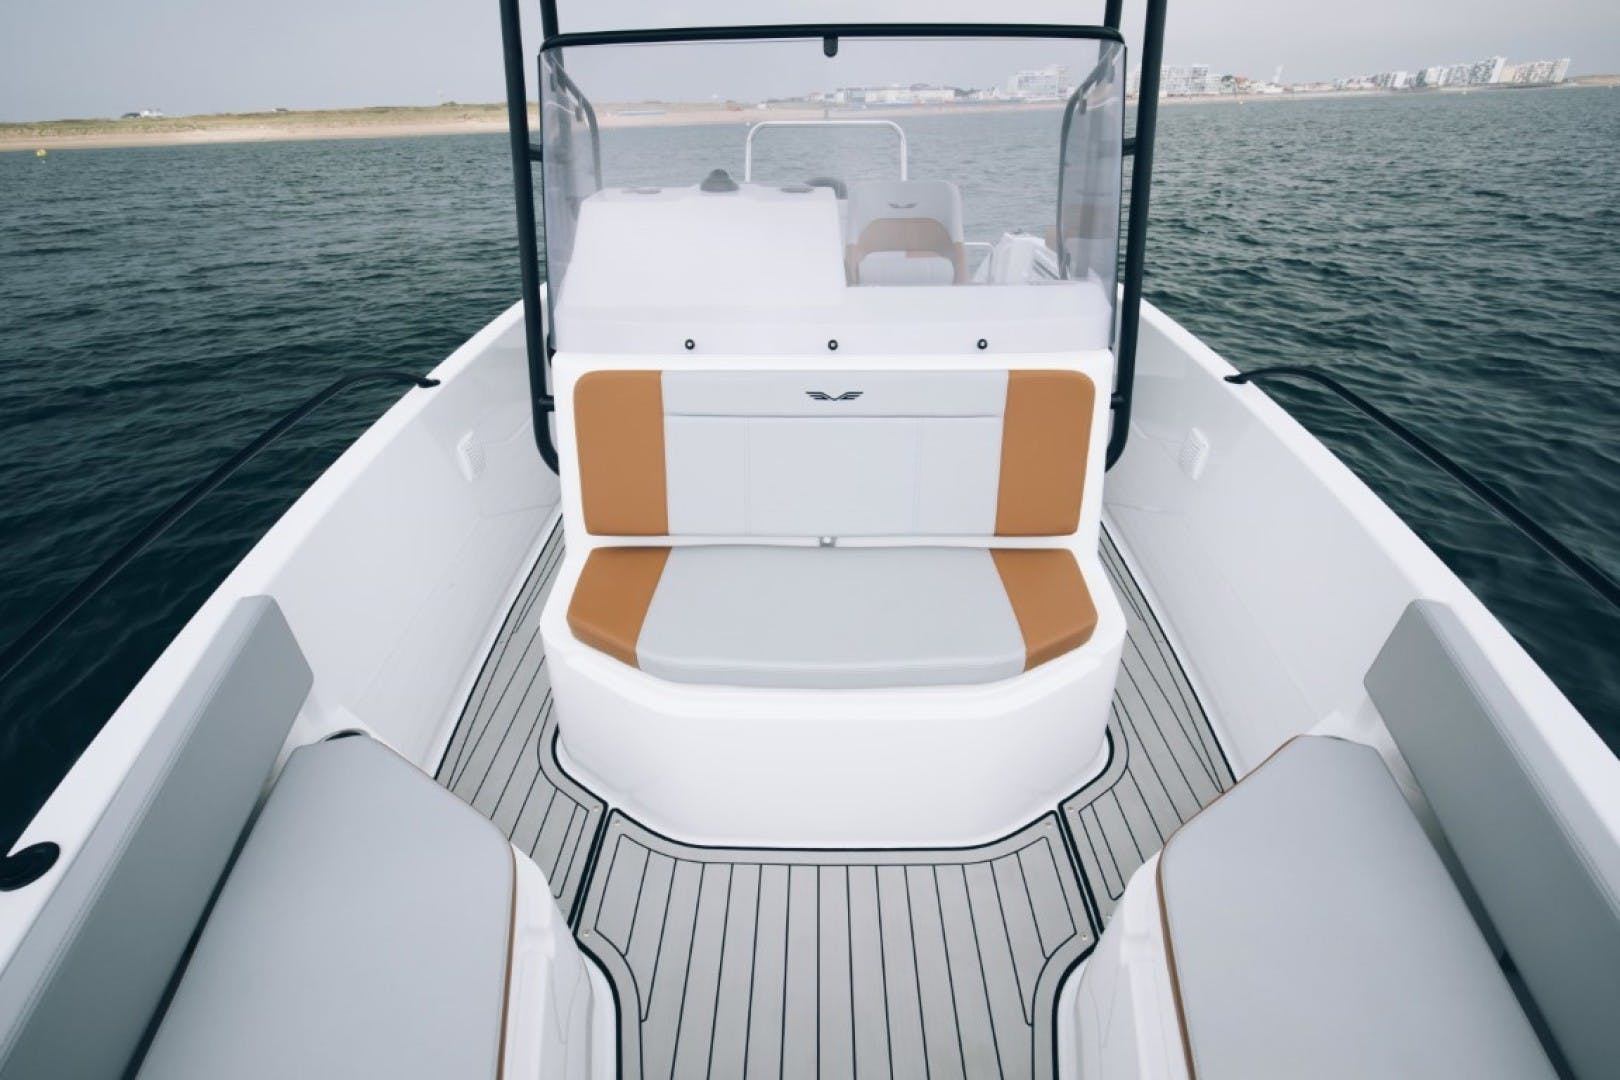 2021 Beneteau 21' Flyer 7 Spacedeck  | Picture 4 of 13